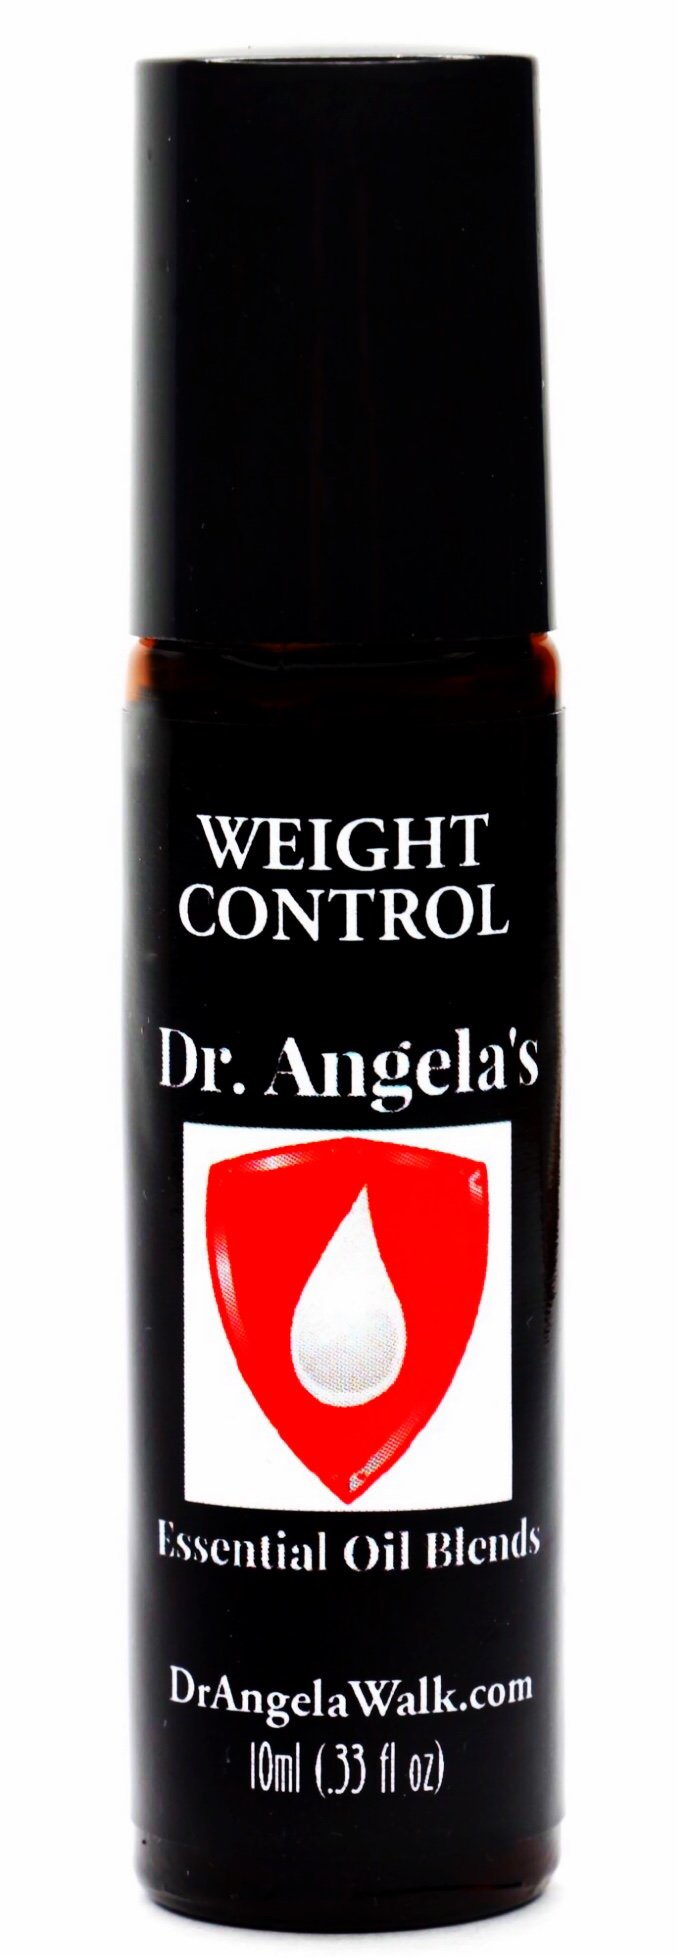 Dr. Angela's Weight Control Essential Oil Blend | Therapeutic Grade | Weight Loss Support Roll-On Bottle 10ml (.33 fl oz)